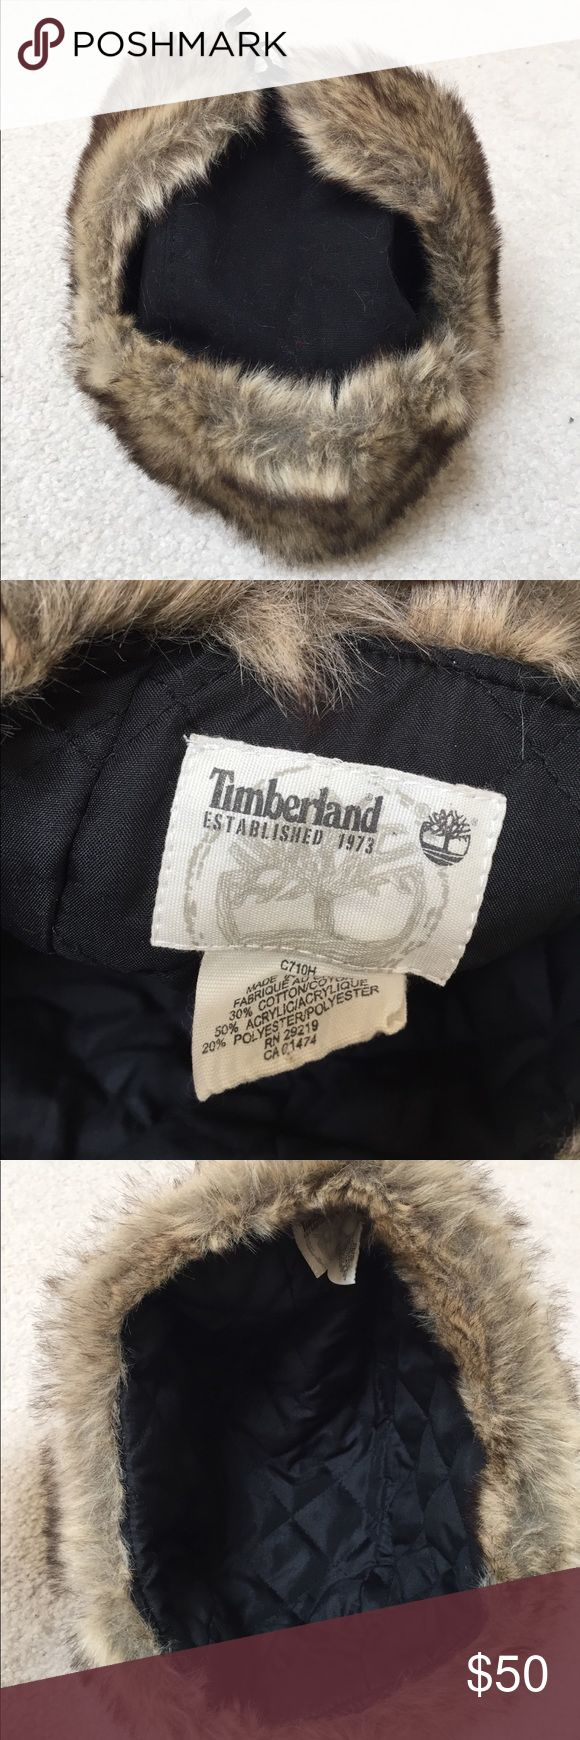 Timberland Hat Never worn. Timberland hat. Make an offer! Timberland Accessories Hats